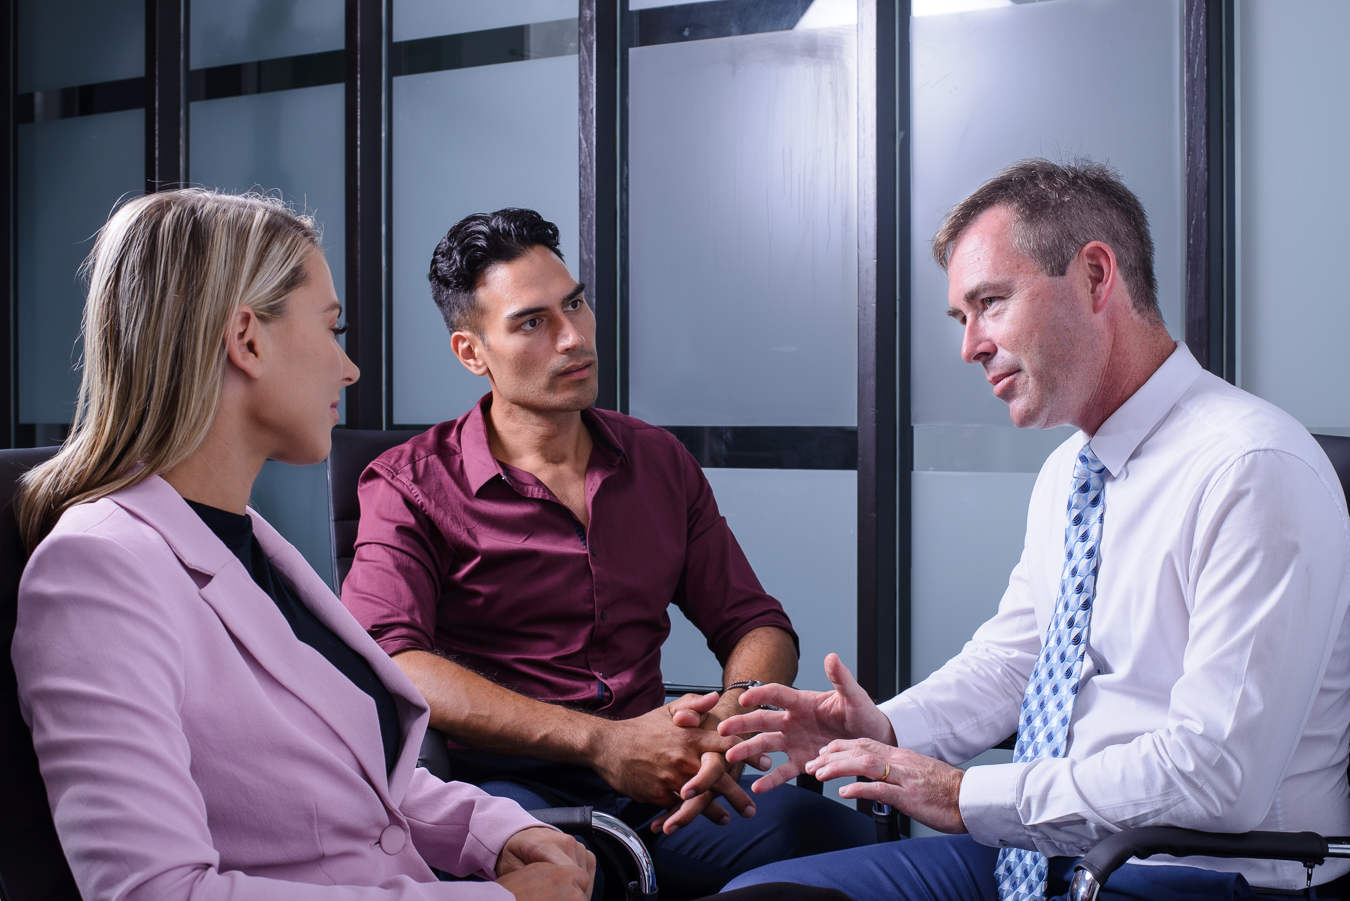 Scott meeting with clients